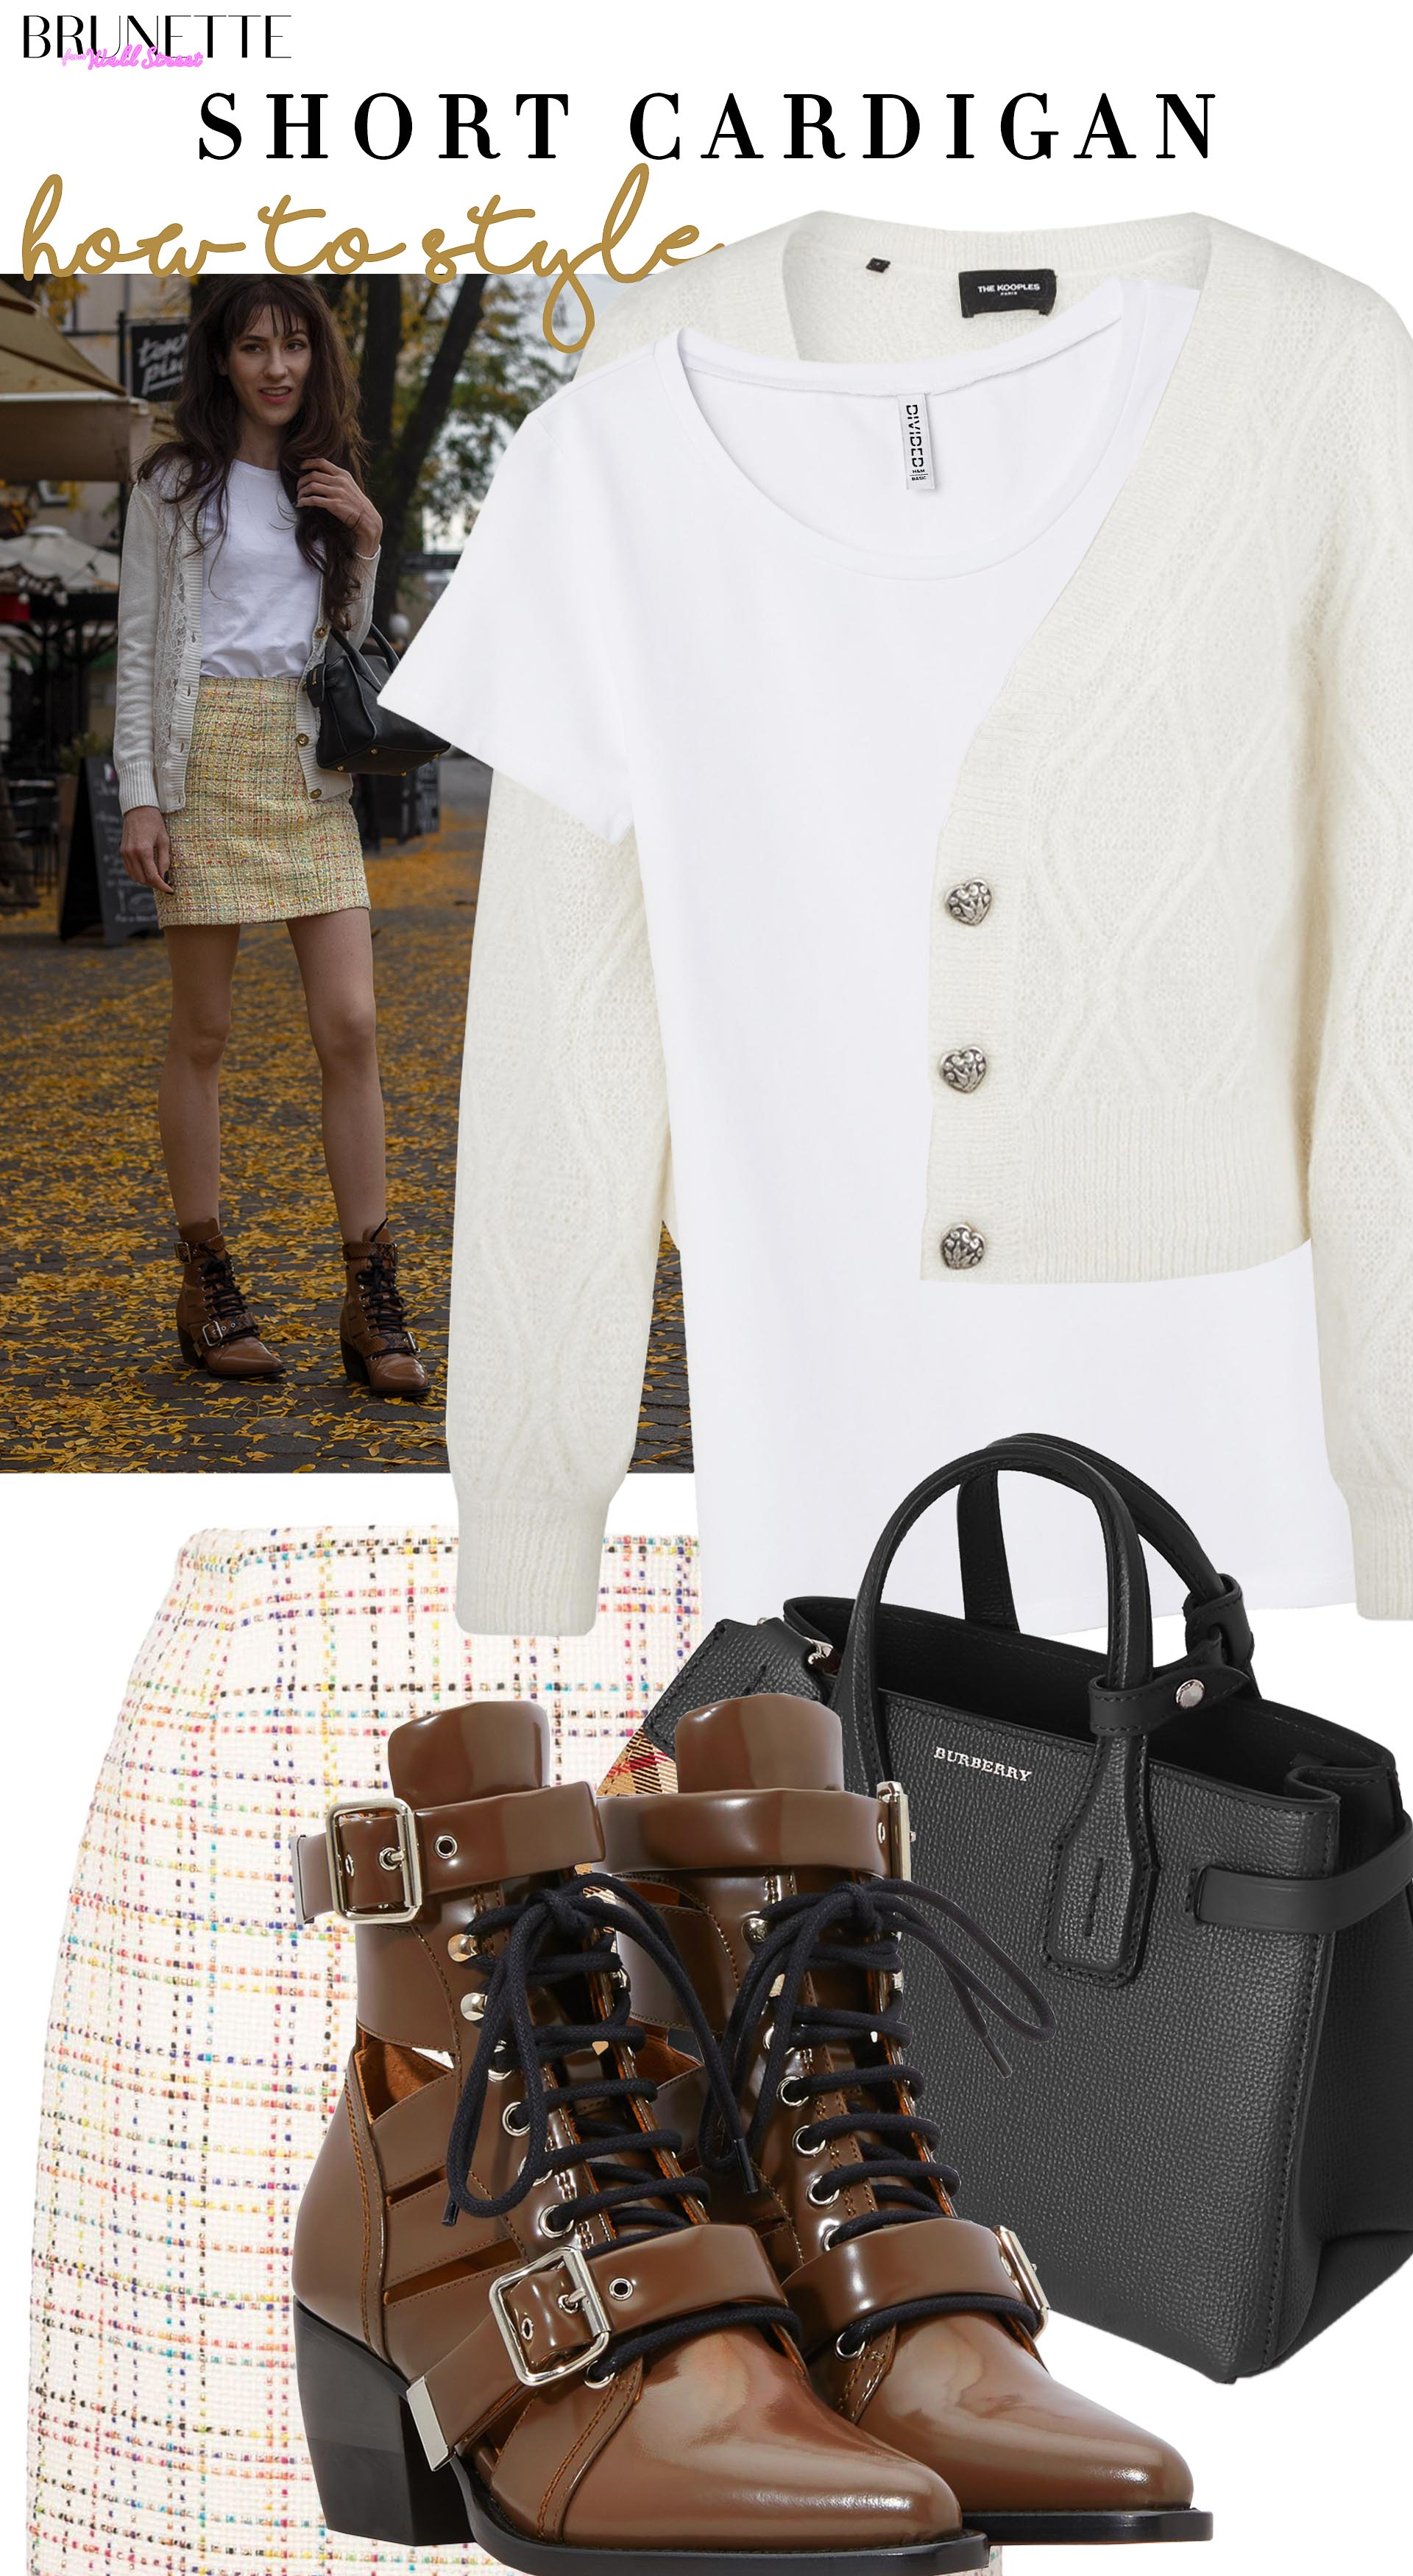 Brunette from Wall Street how to style short lace cardigan yellow tweed skirt chloe rylee ankle boots fall